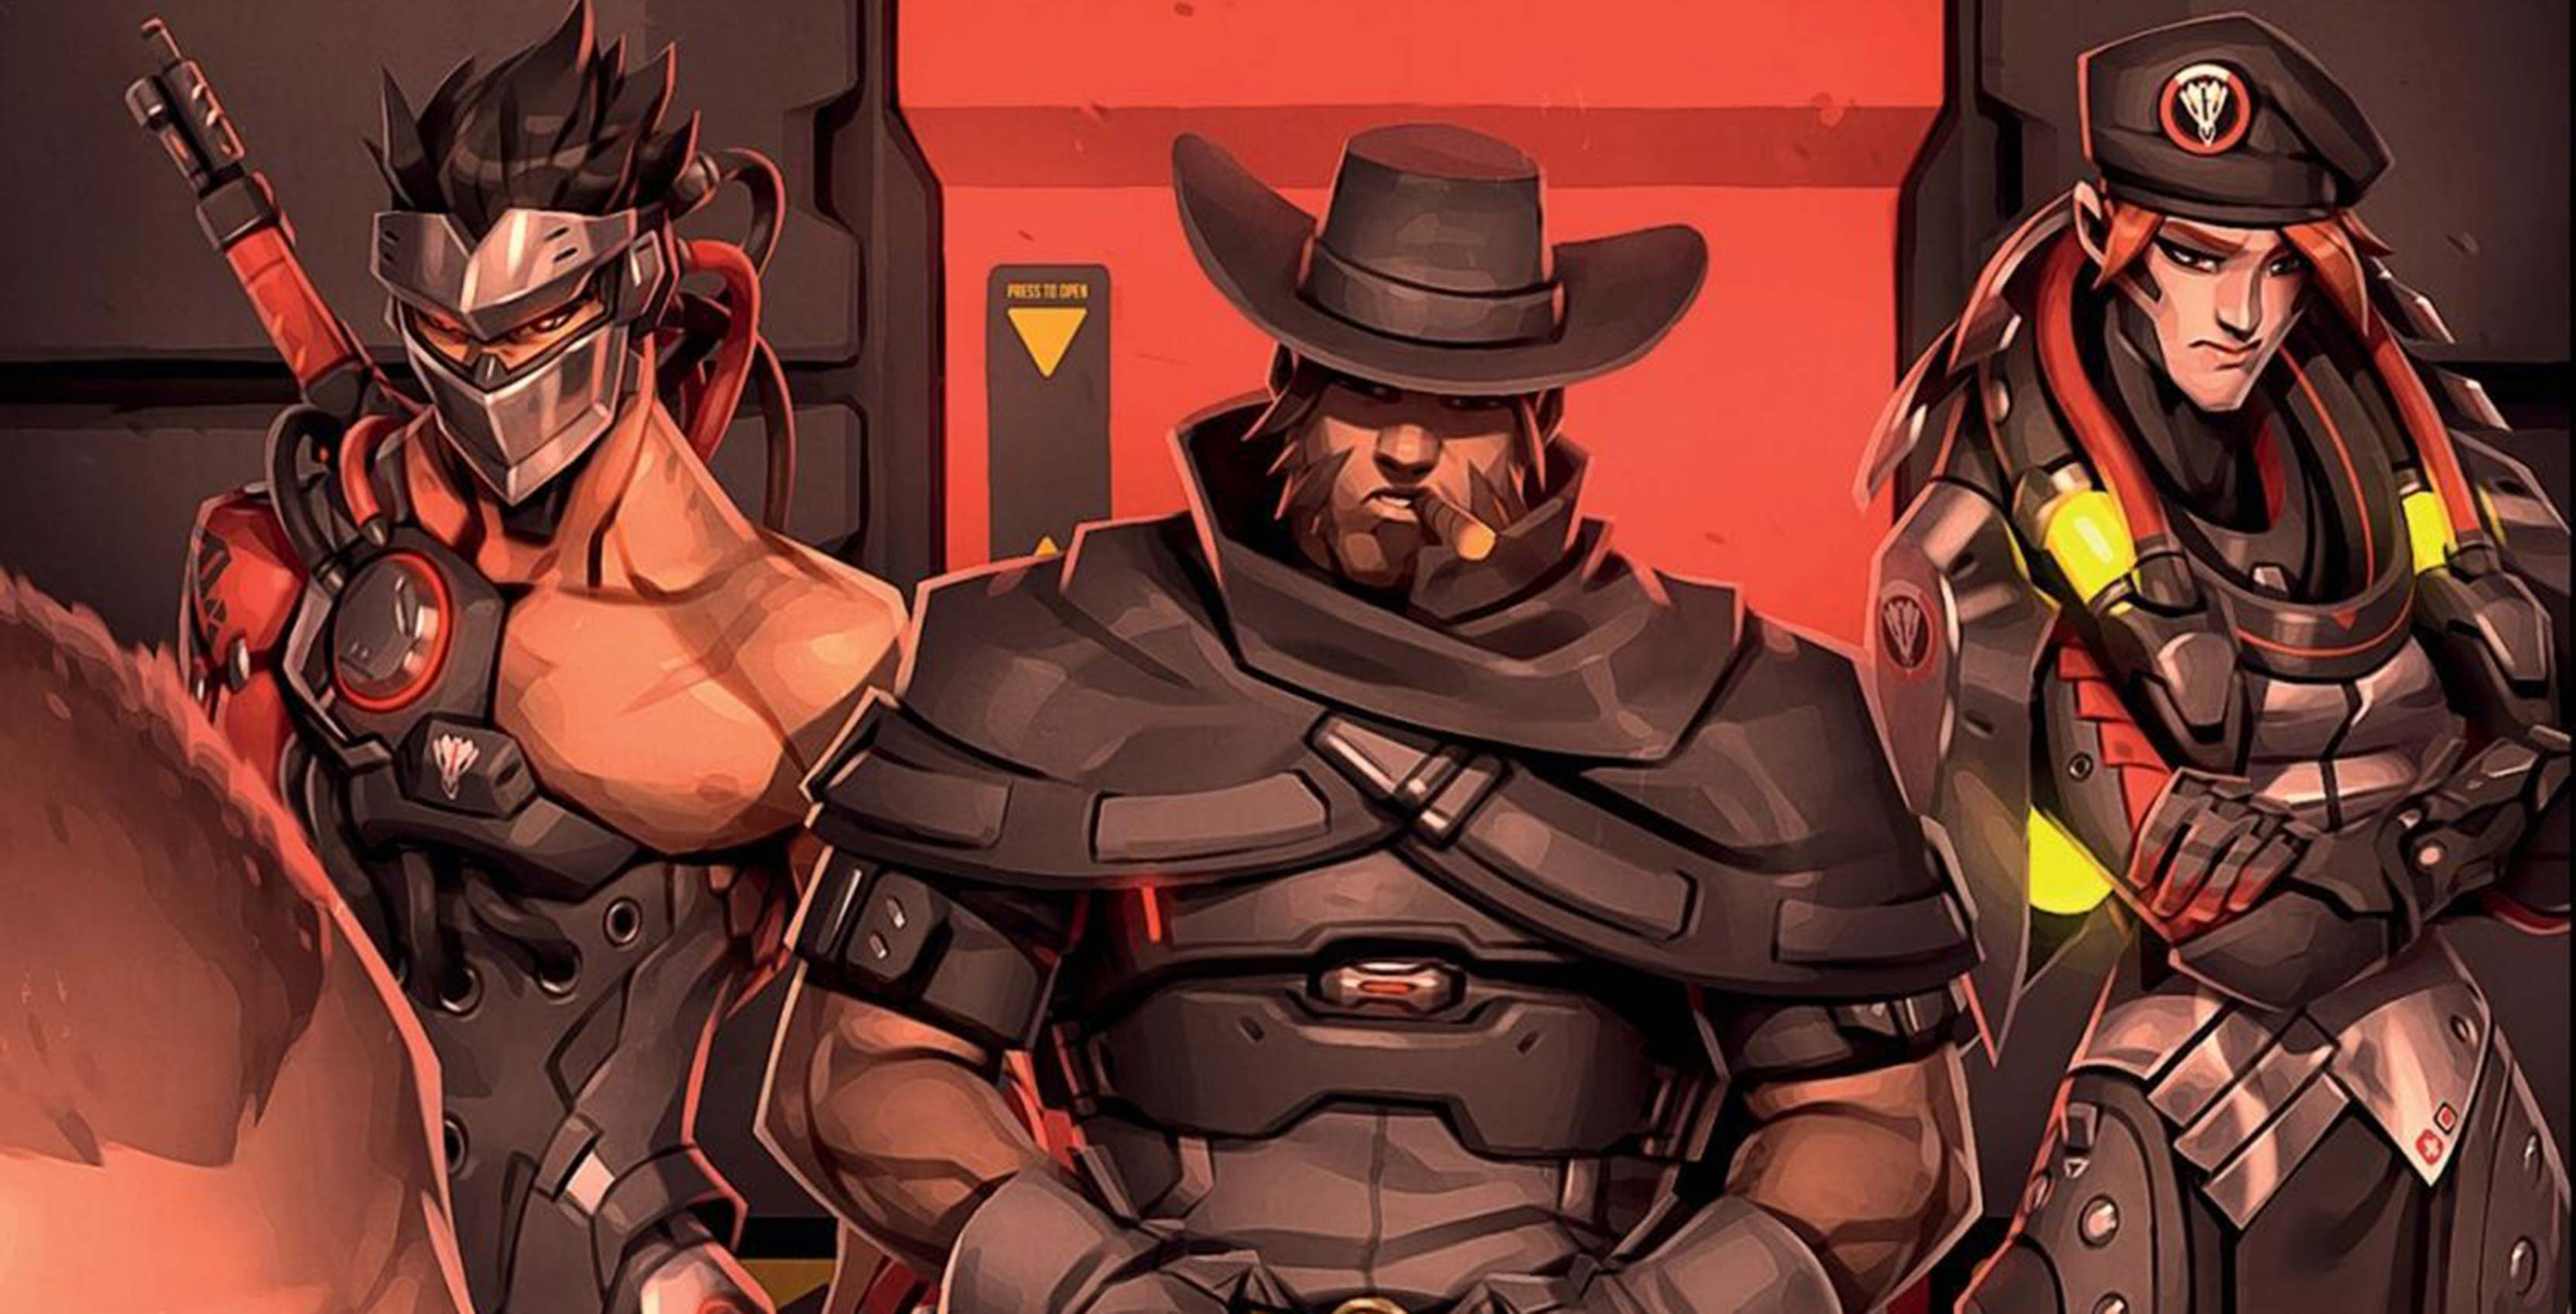 Blizzard releases 'Retribution' comic revealing more about